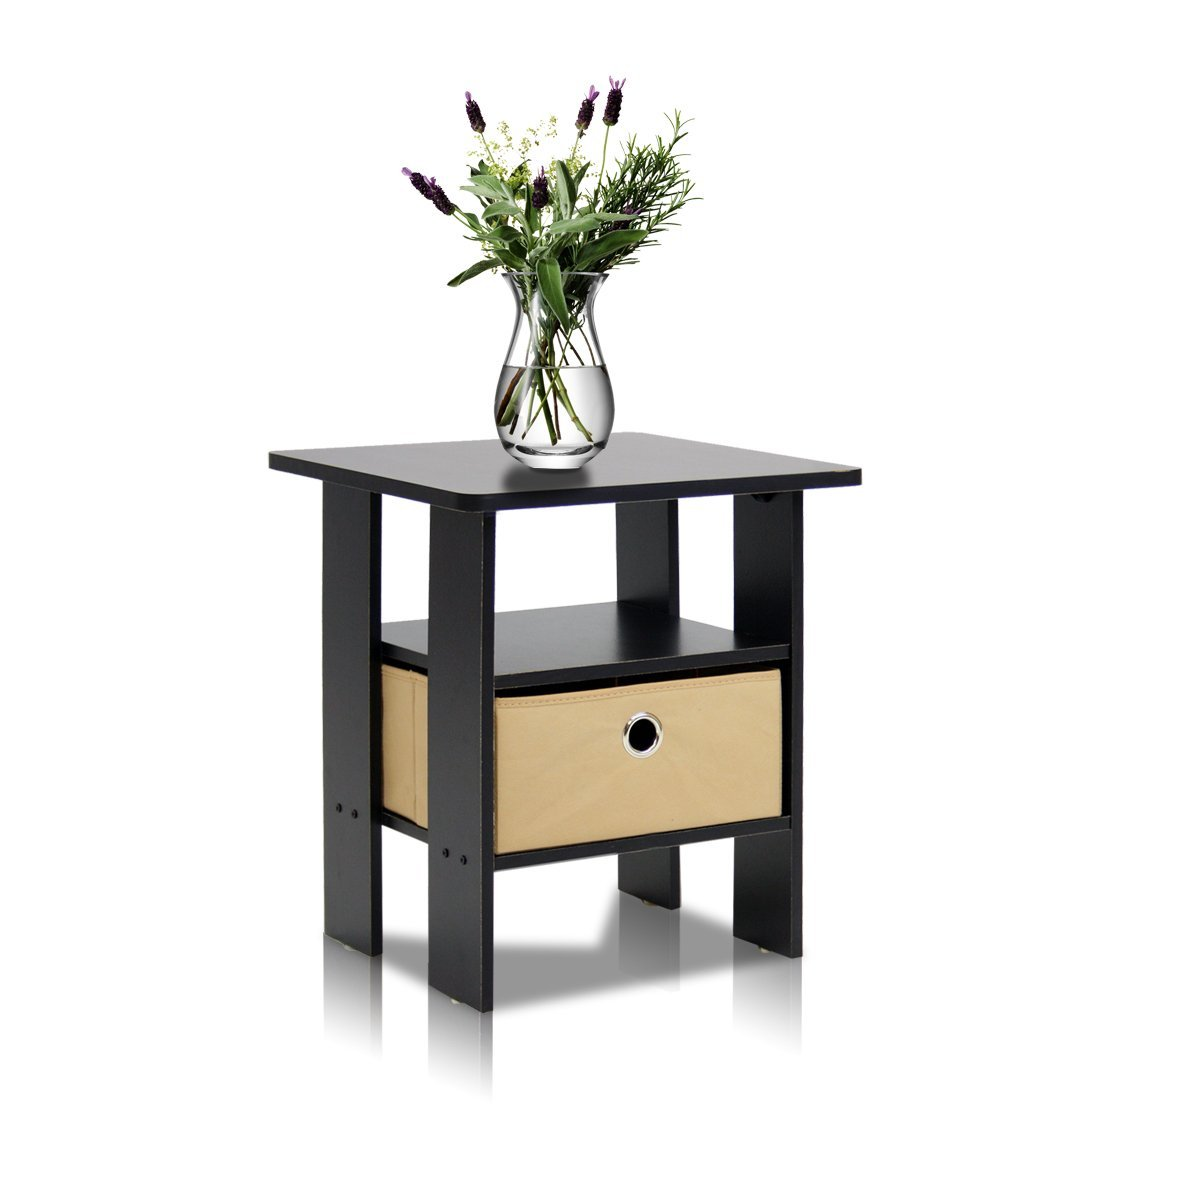 Furinno 11157EX/BR End Table Bedroom Night Stand w/Bin Drawer, Espresso/Brown